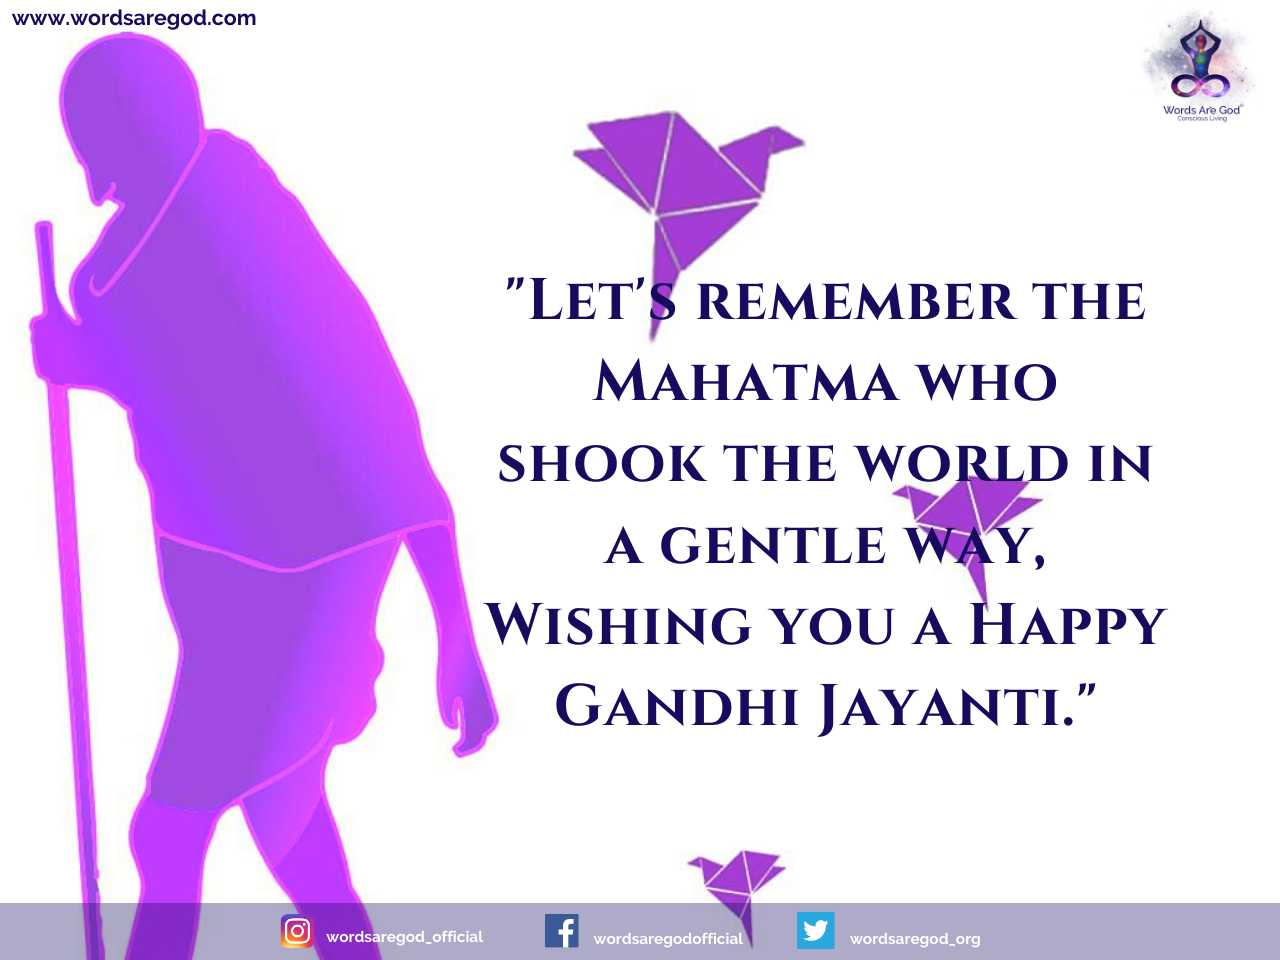 Gandhi Jayanti 2020 by Events and Festival